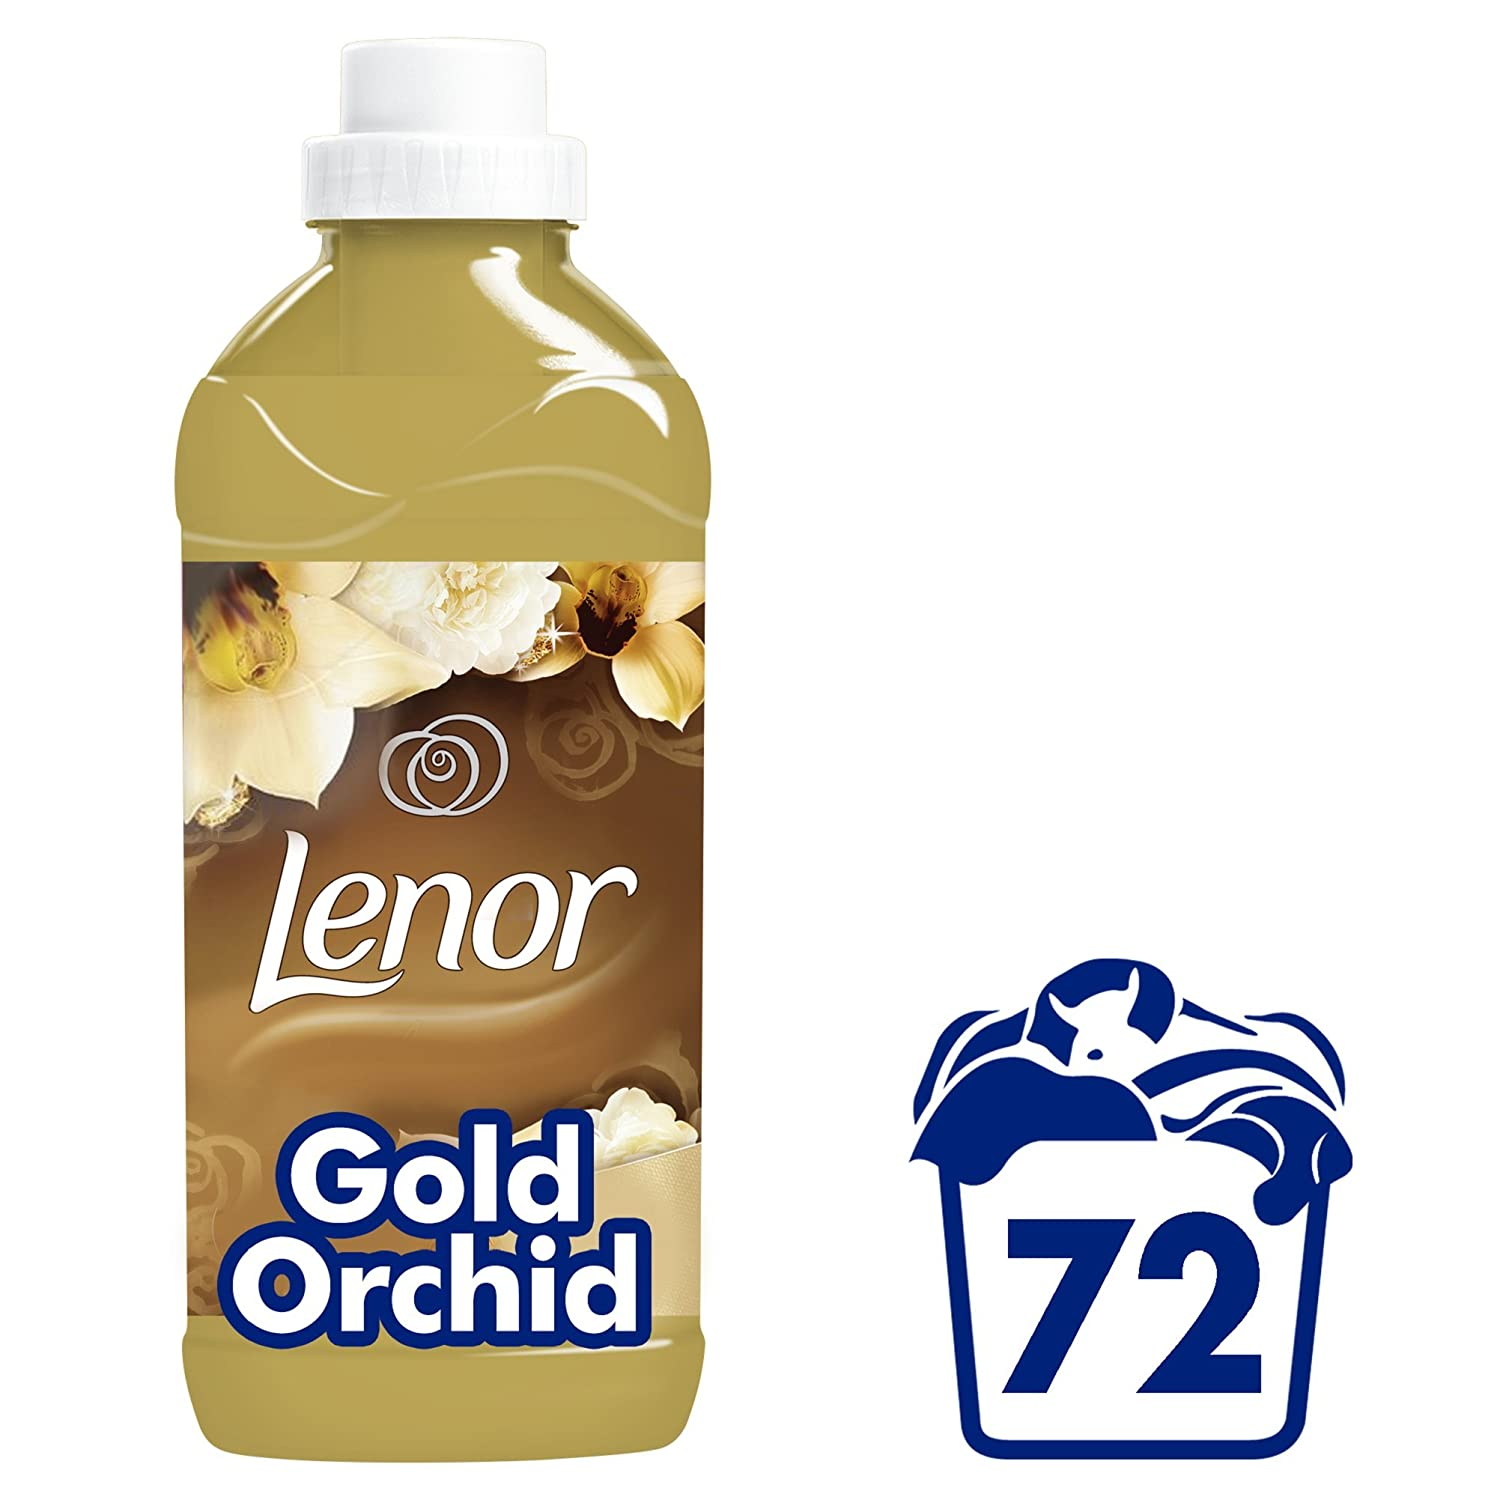 Lenor Fabric Conditioner Gold Orchid Scent Anti Ageing for Soft